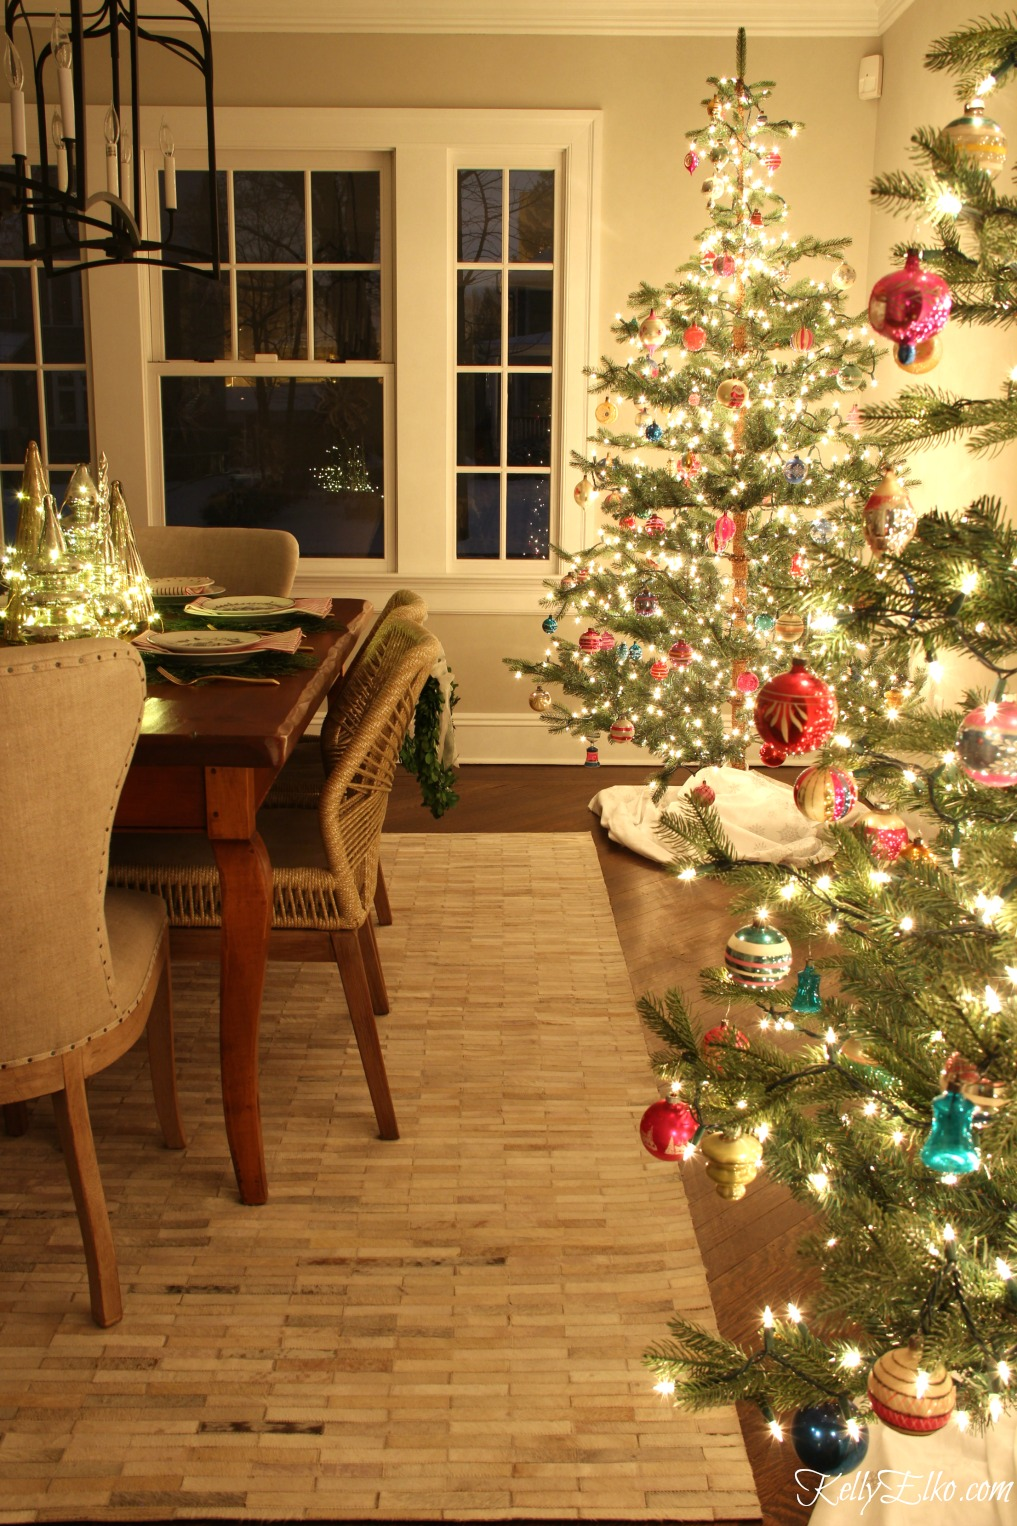 Christmas Nights Tour - see 25 of the best Christmas homes lit up at night! kellyelko.com #christmas #christmasdecorating #christmasdecor #christmaslights